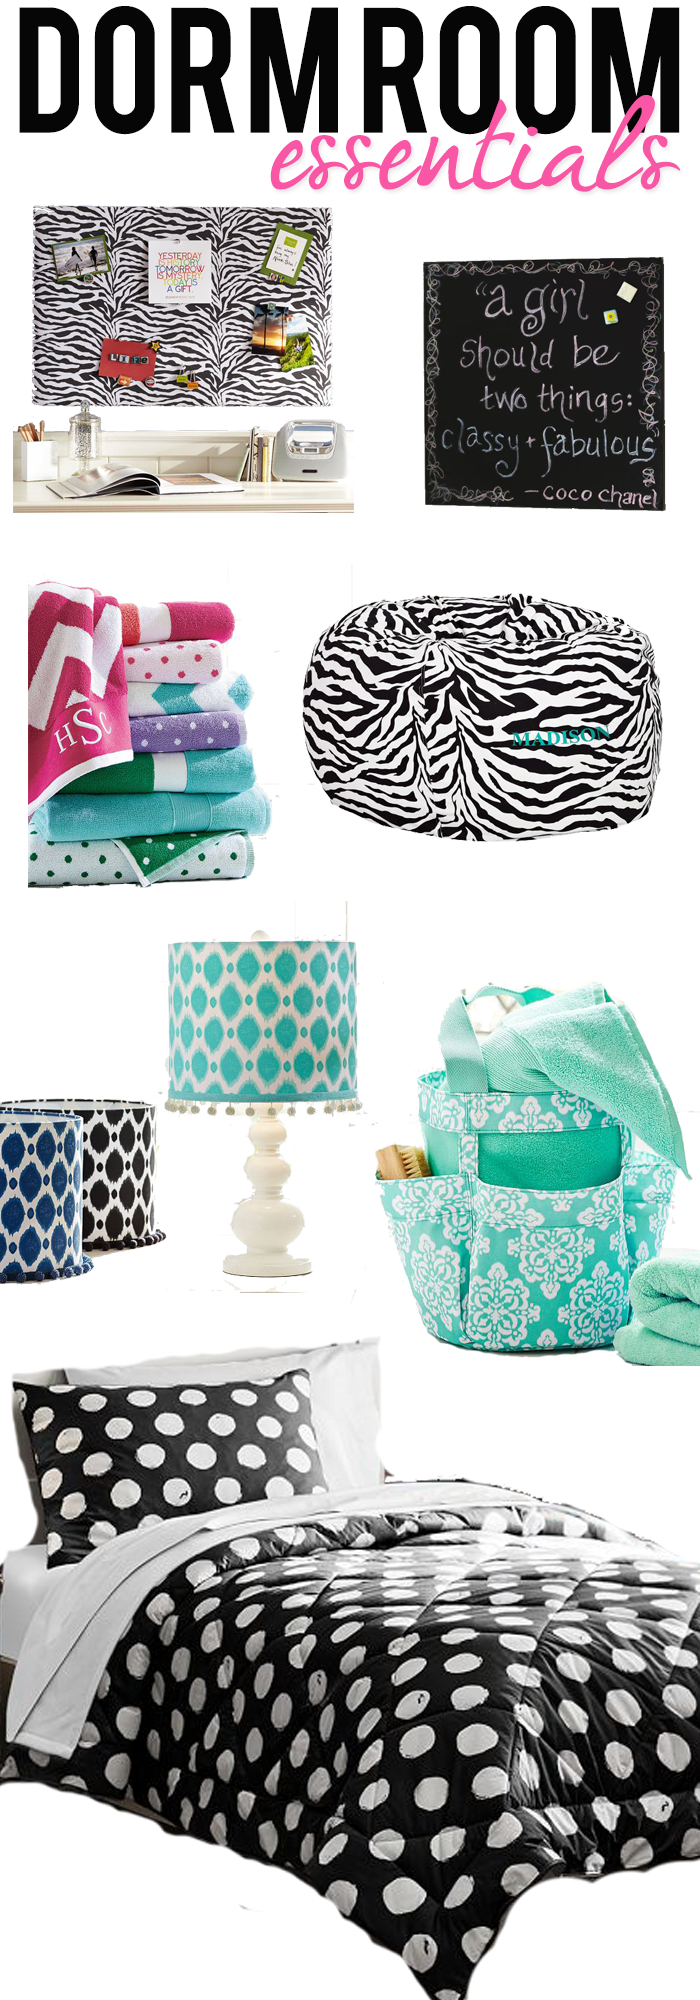 Dorm Room Essentials At Pottery Barn    Great For Teen Girl Room Too Part 22